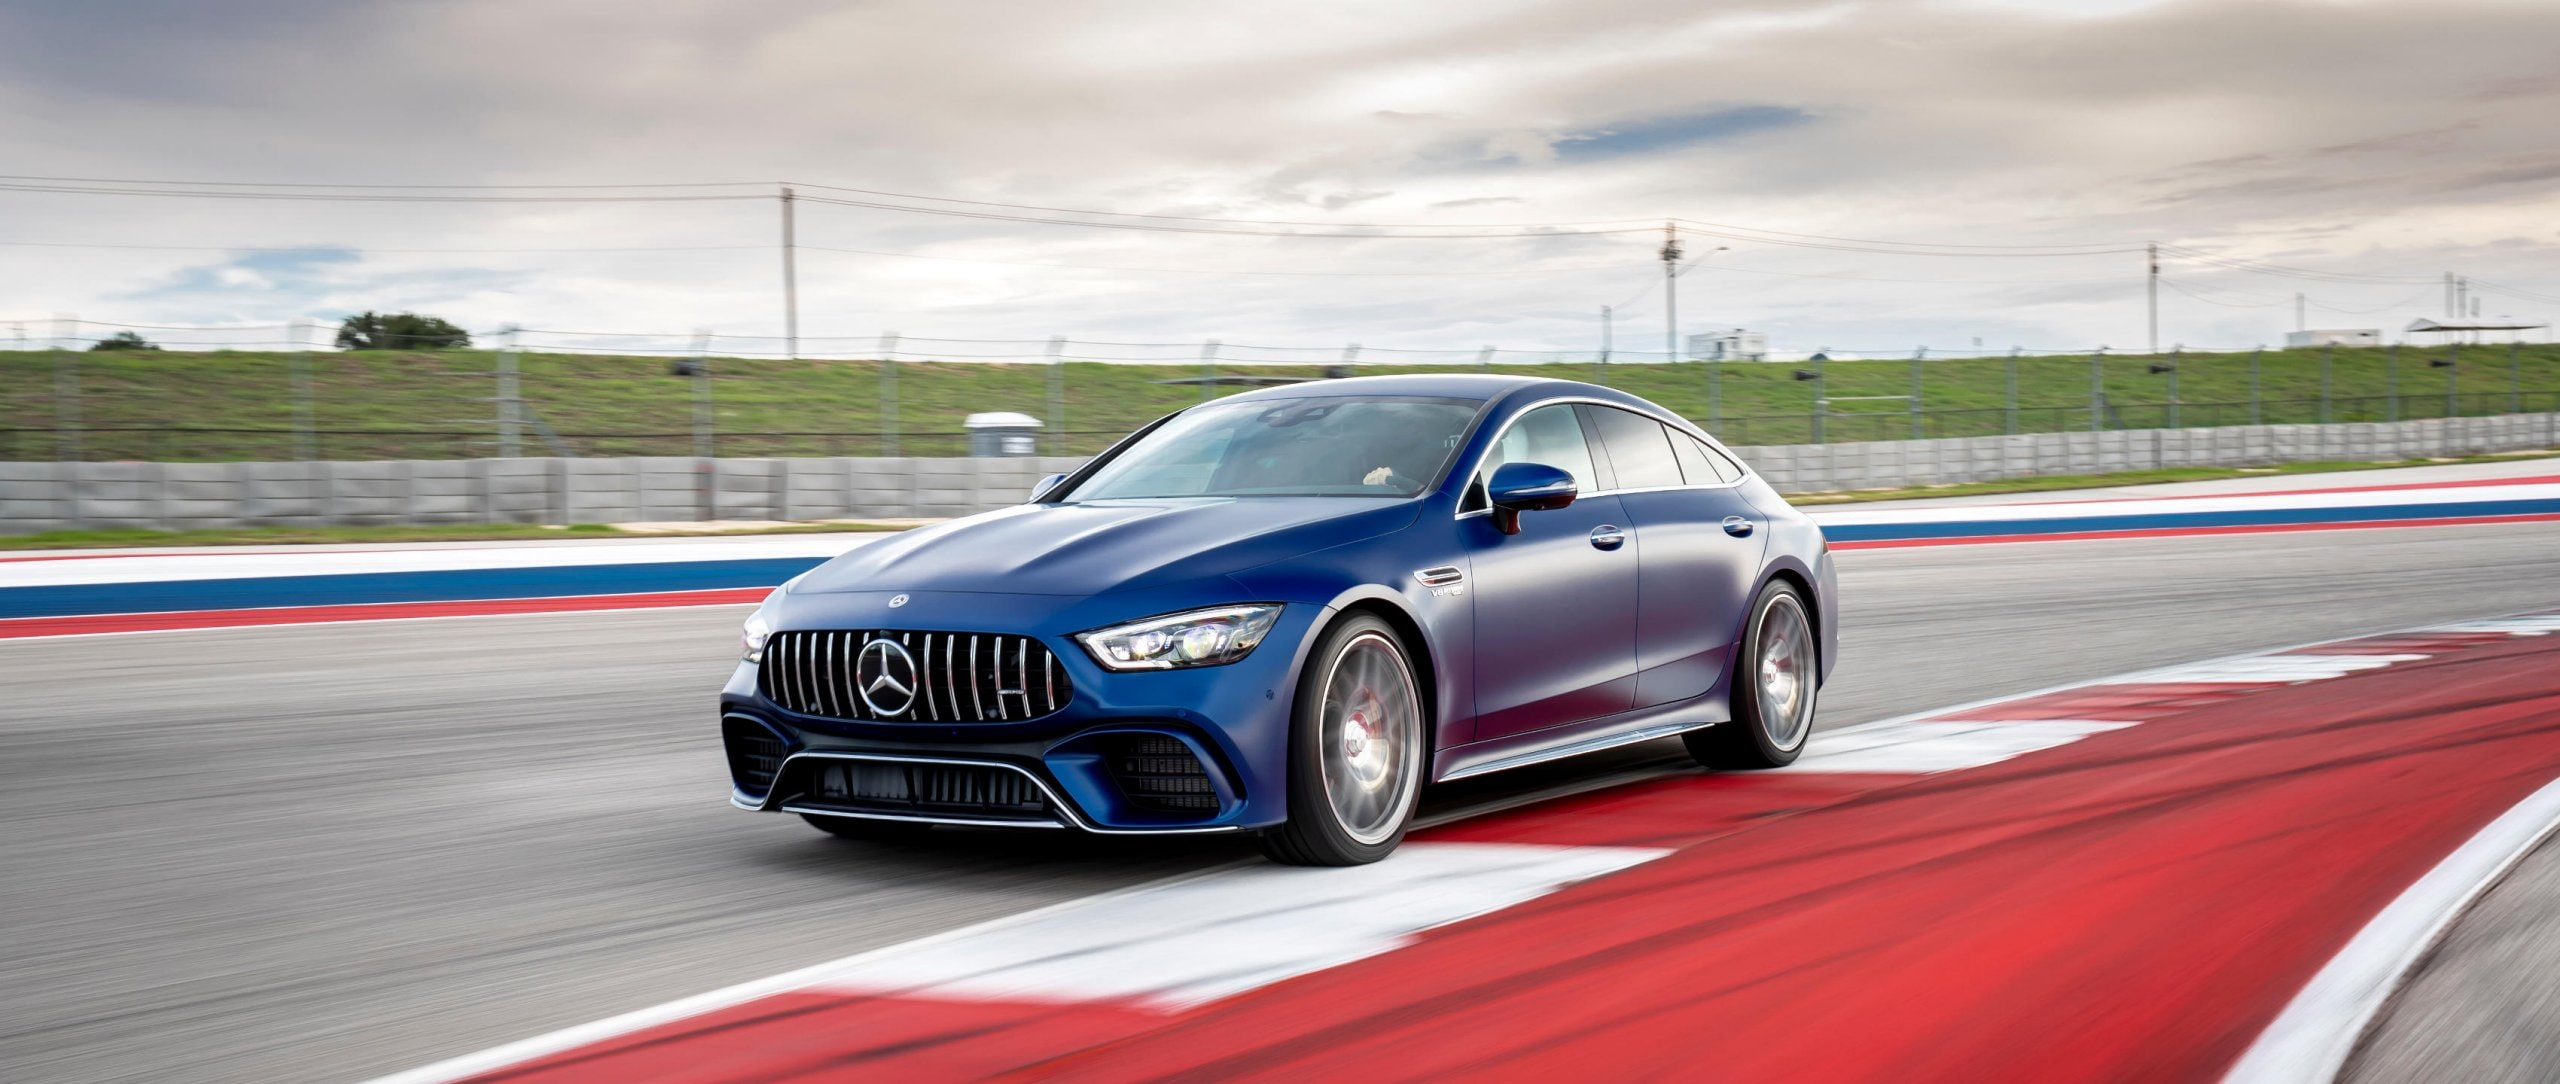 The Mercedes-AMG GT 63 S 4MATIC+ 4-Door Coupé on the racetrack.